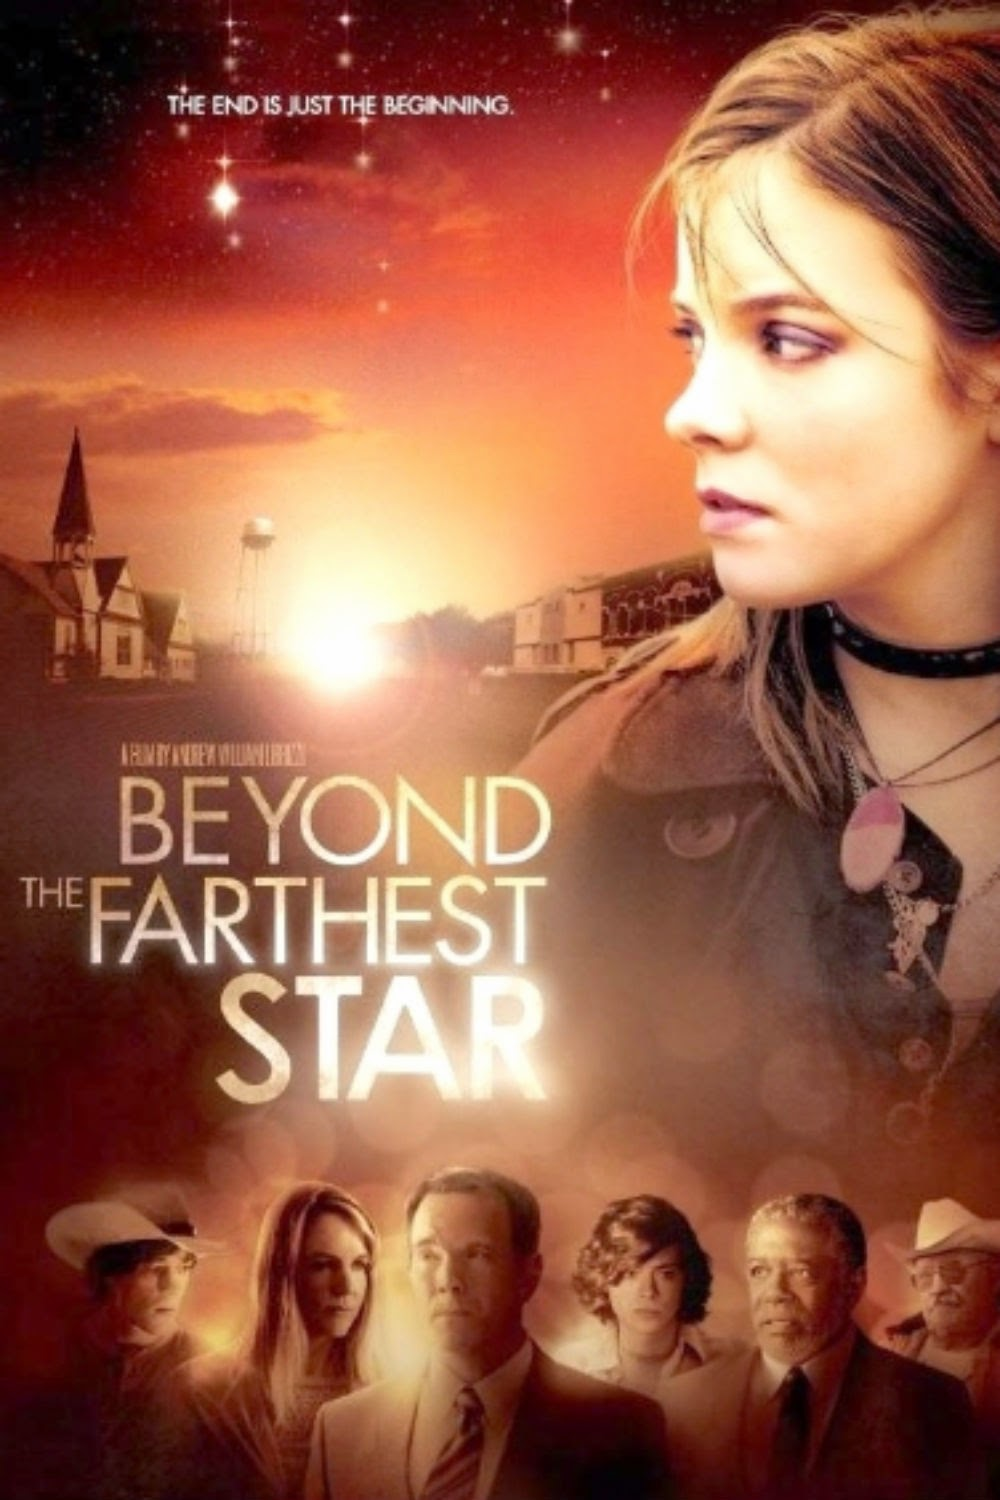 Beyond the Farthest Star — 3.5 out of 5 stars